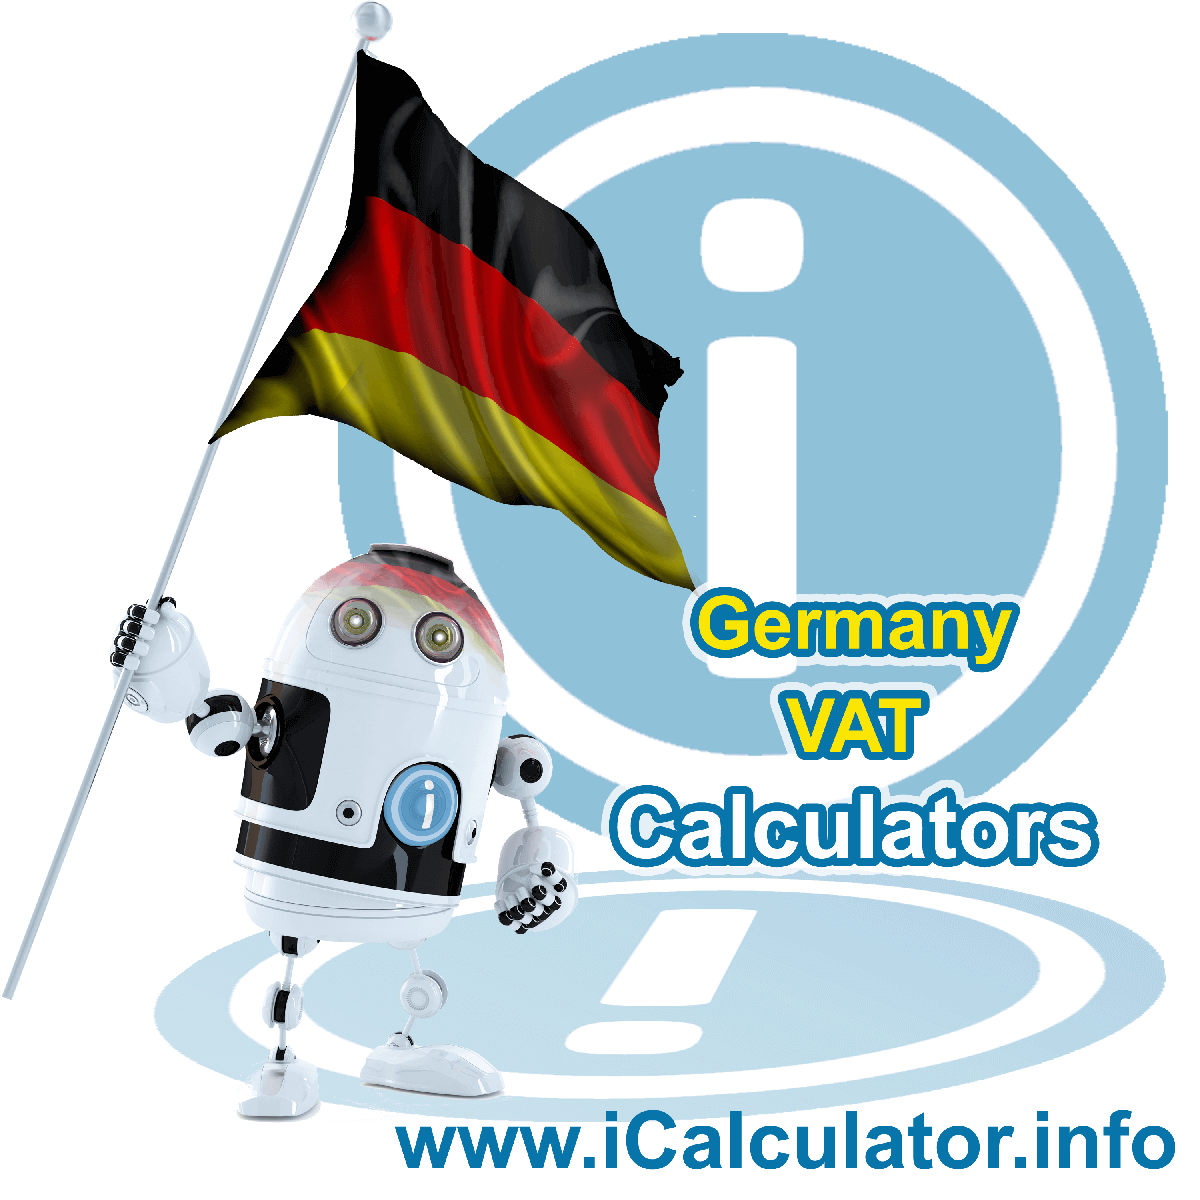 Germany VAT Calculator. This image shows the Germany flag and information relating to the VAT formula used for calculating Value Added Tax in Germany using the Germany VAT Calculator in 2020